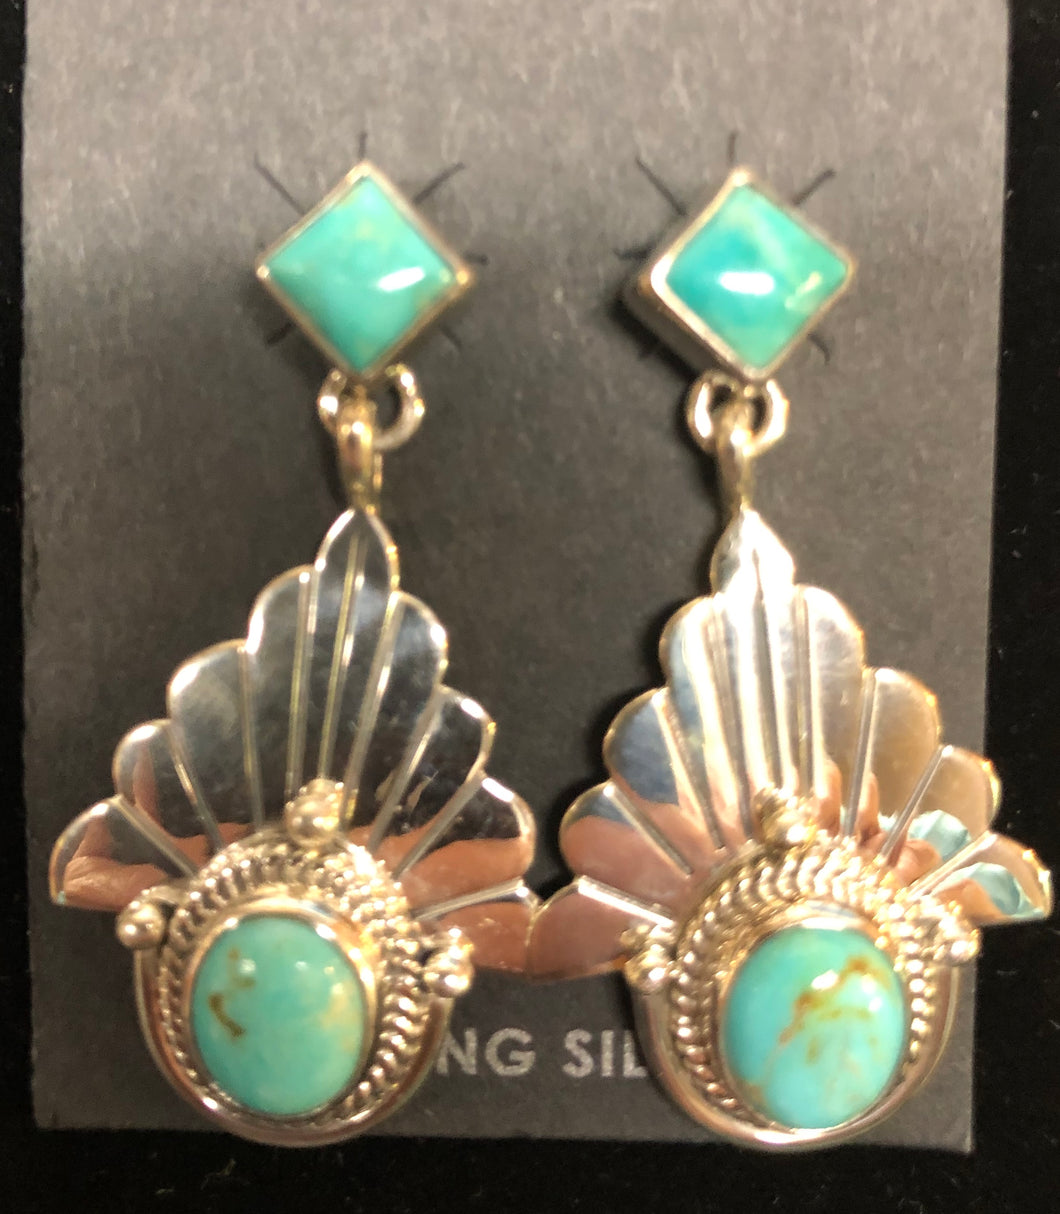 Turquoise set in sterling silver post earrings